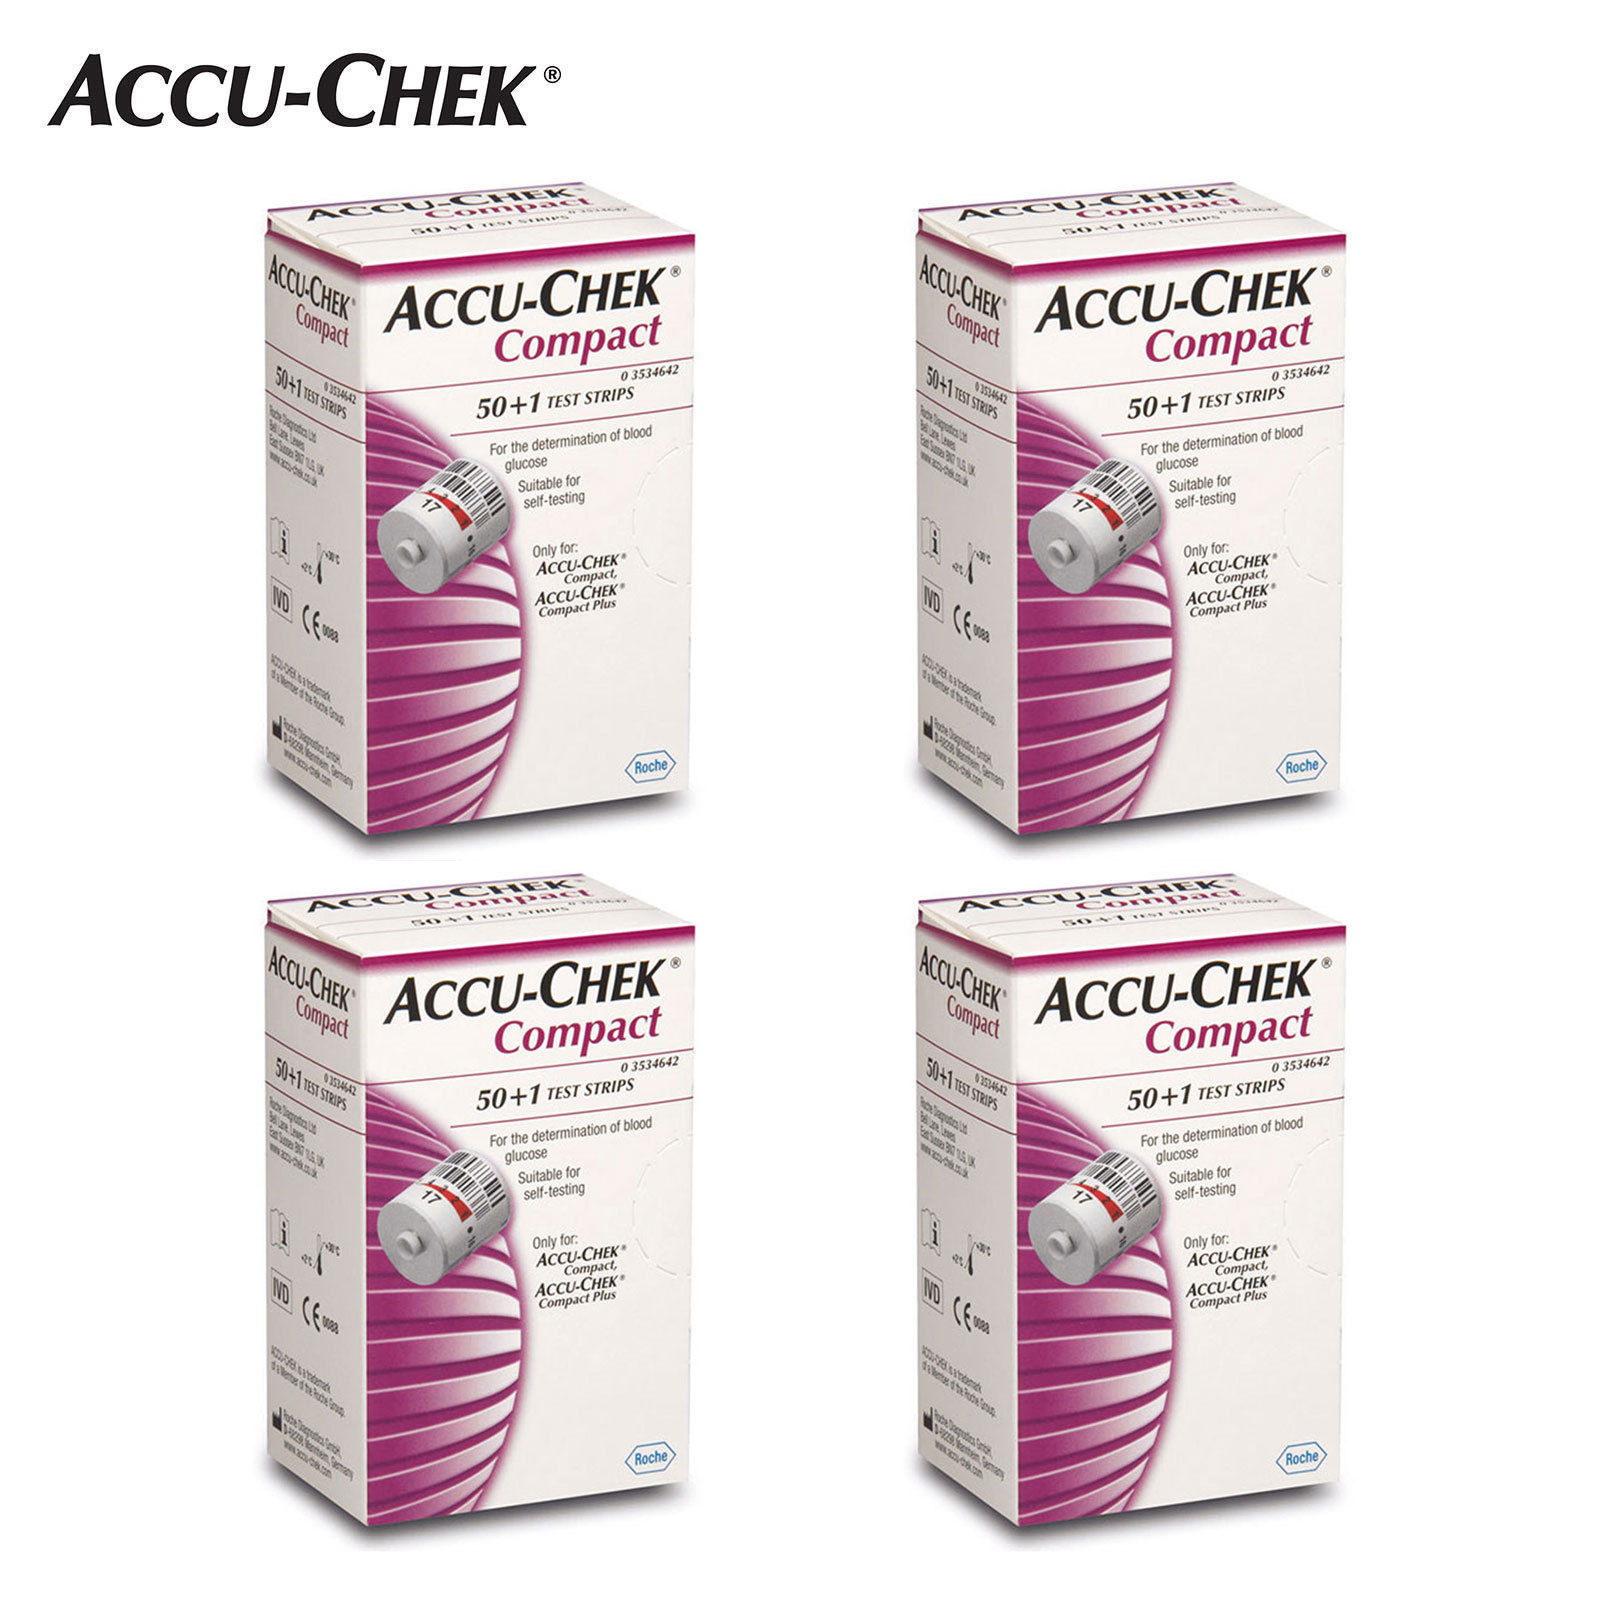 Accu-Chek Compact blood glucose Test Strips 4box (204 Sheets)